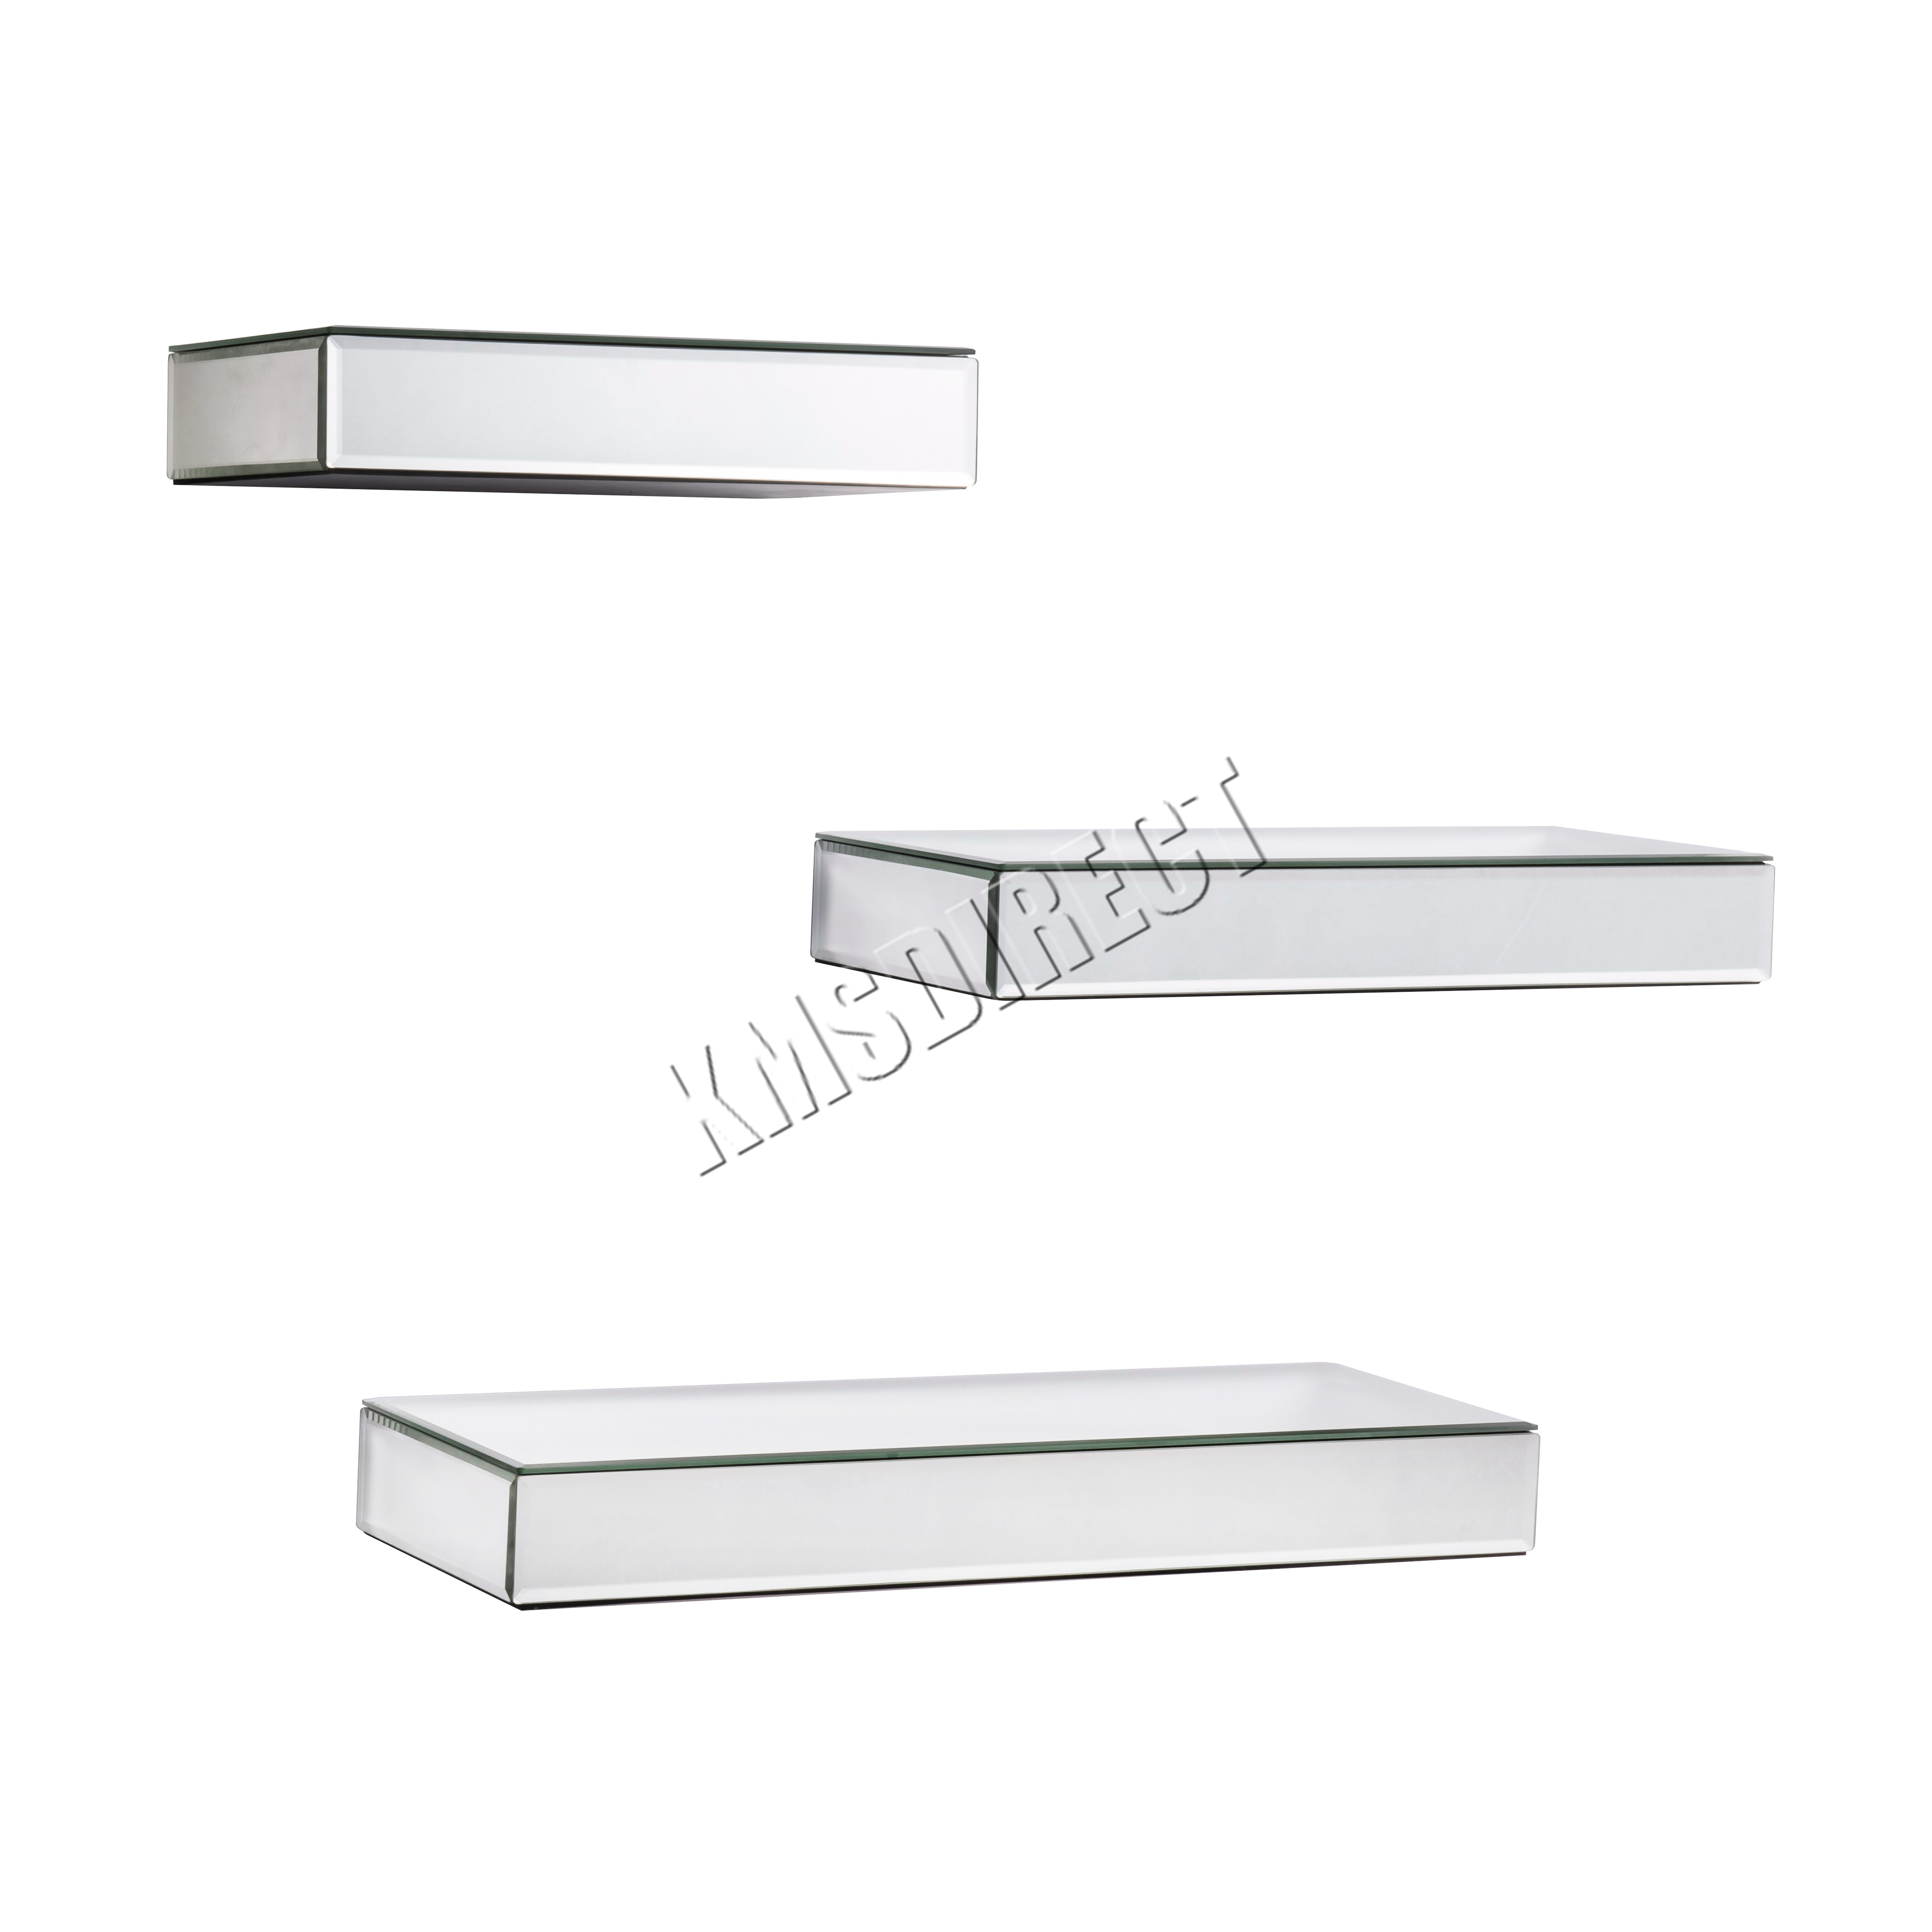 Res Content Global Inflow Inflowcomponent Technicalissues Mirrored Floating Wall Shelf 120cm Shelves Uk U Shaped Set